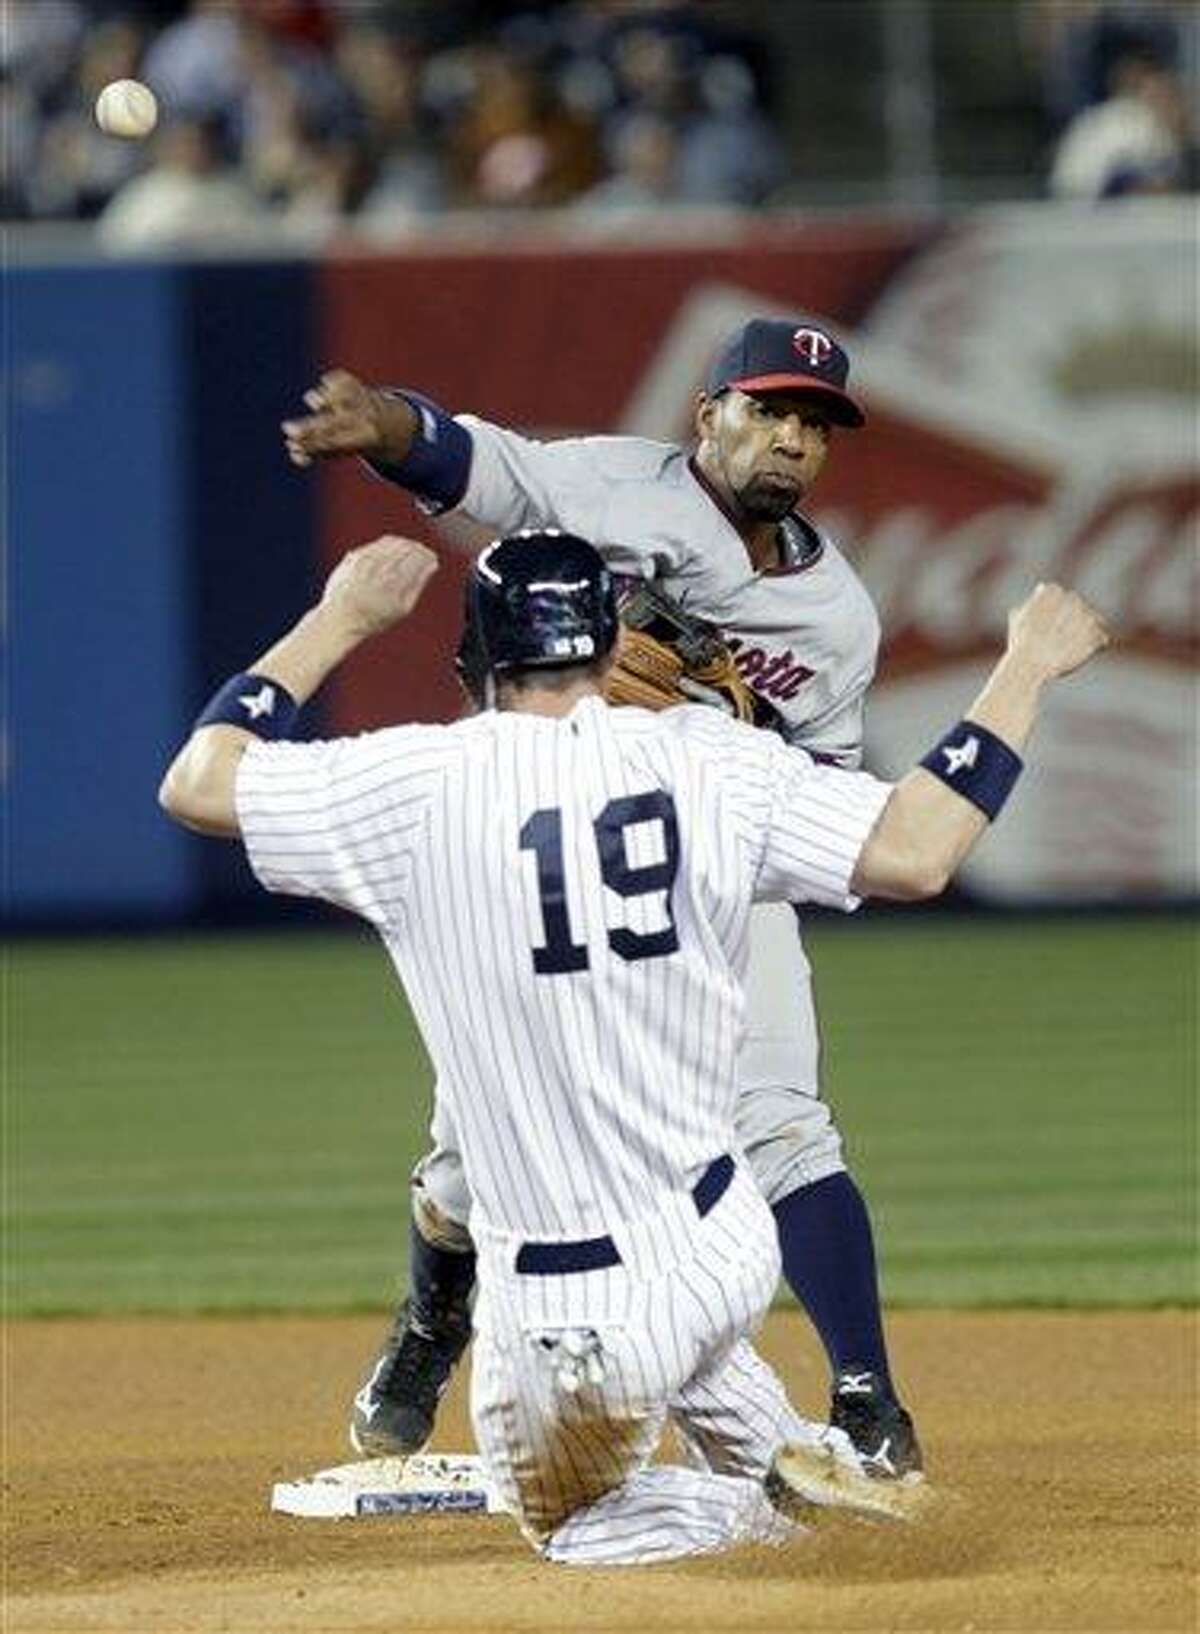 Minnesota Twins second baseman Alexi Casilla throws to first after forcing out New York Yankees' Chris Stewart during the seventh inning of a baseball game at Yankee Stadium in New York, Tuesday, April 17, 2012. Derek Jeter was safe at first. The Yankees beat the Twins 8-3. (AP Photo/Seth Wenig)